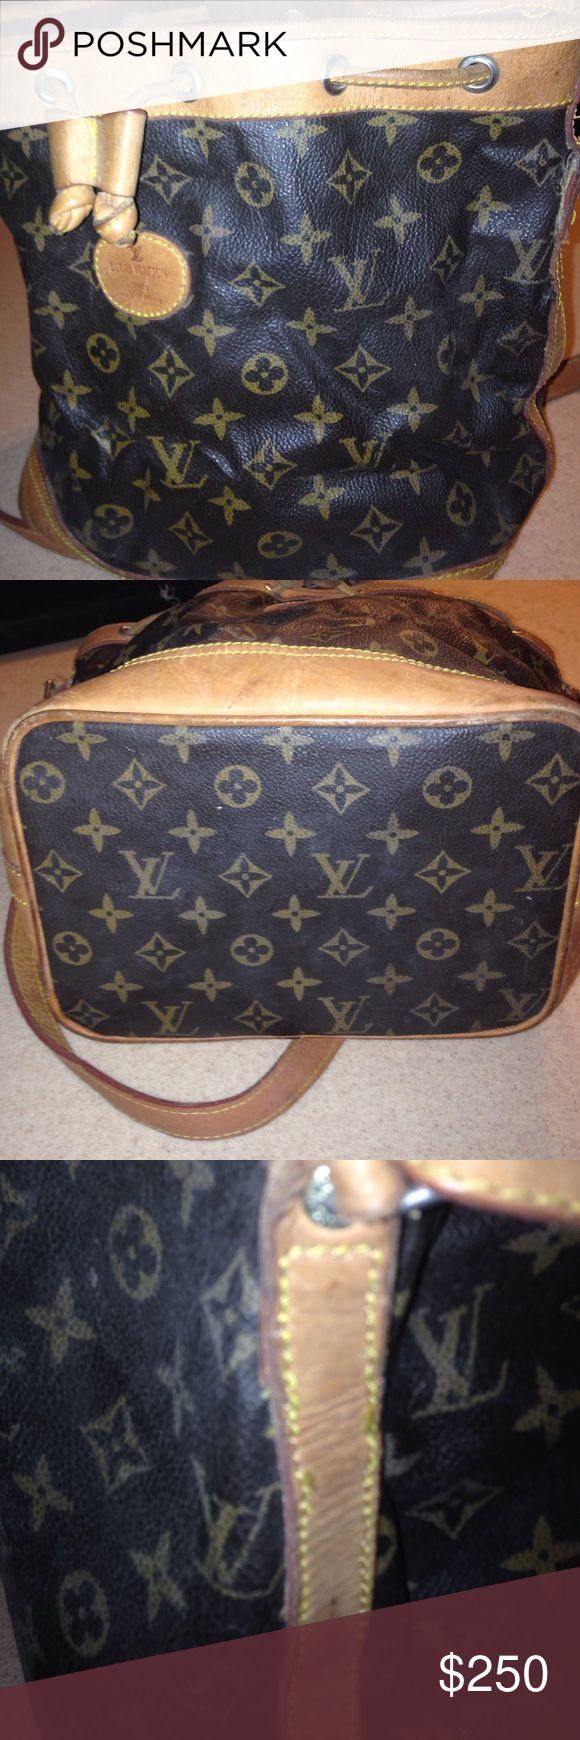 Vintage authentic Louis Vuitton bucket bag Vintage authentic Louis Vuitton bucket bag   Needs tax. I had it repaired and the guy did not do a good job. Leather needs conditioning.  I do not have time to give the bag the love it needs.  Please look at bag pictures carefully. Lining is felt and in tact. Great bag for the Louis lover that wants a great deal. If you fix it up you will get $500 for it.  The bag was left to dry put. Louis Vuitton Bags